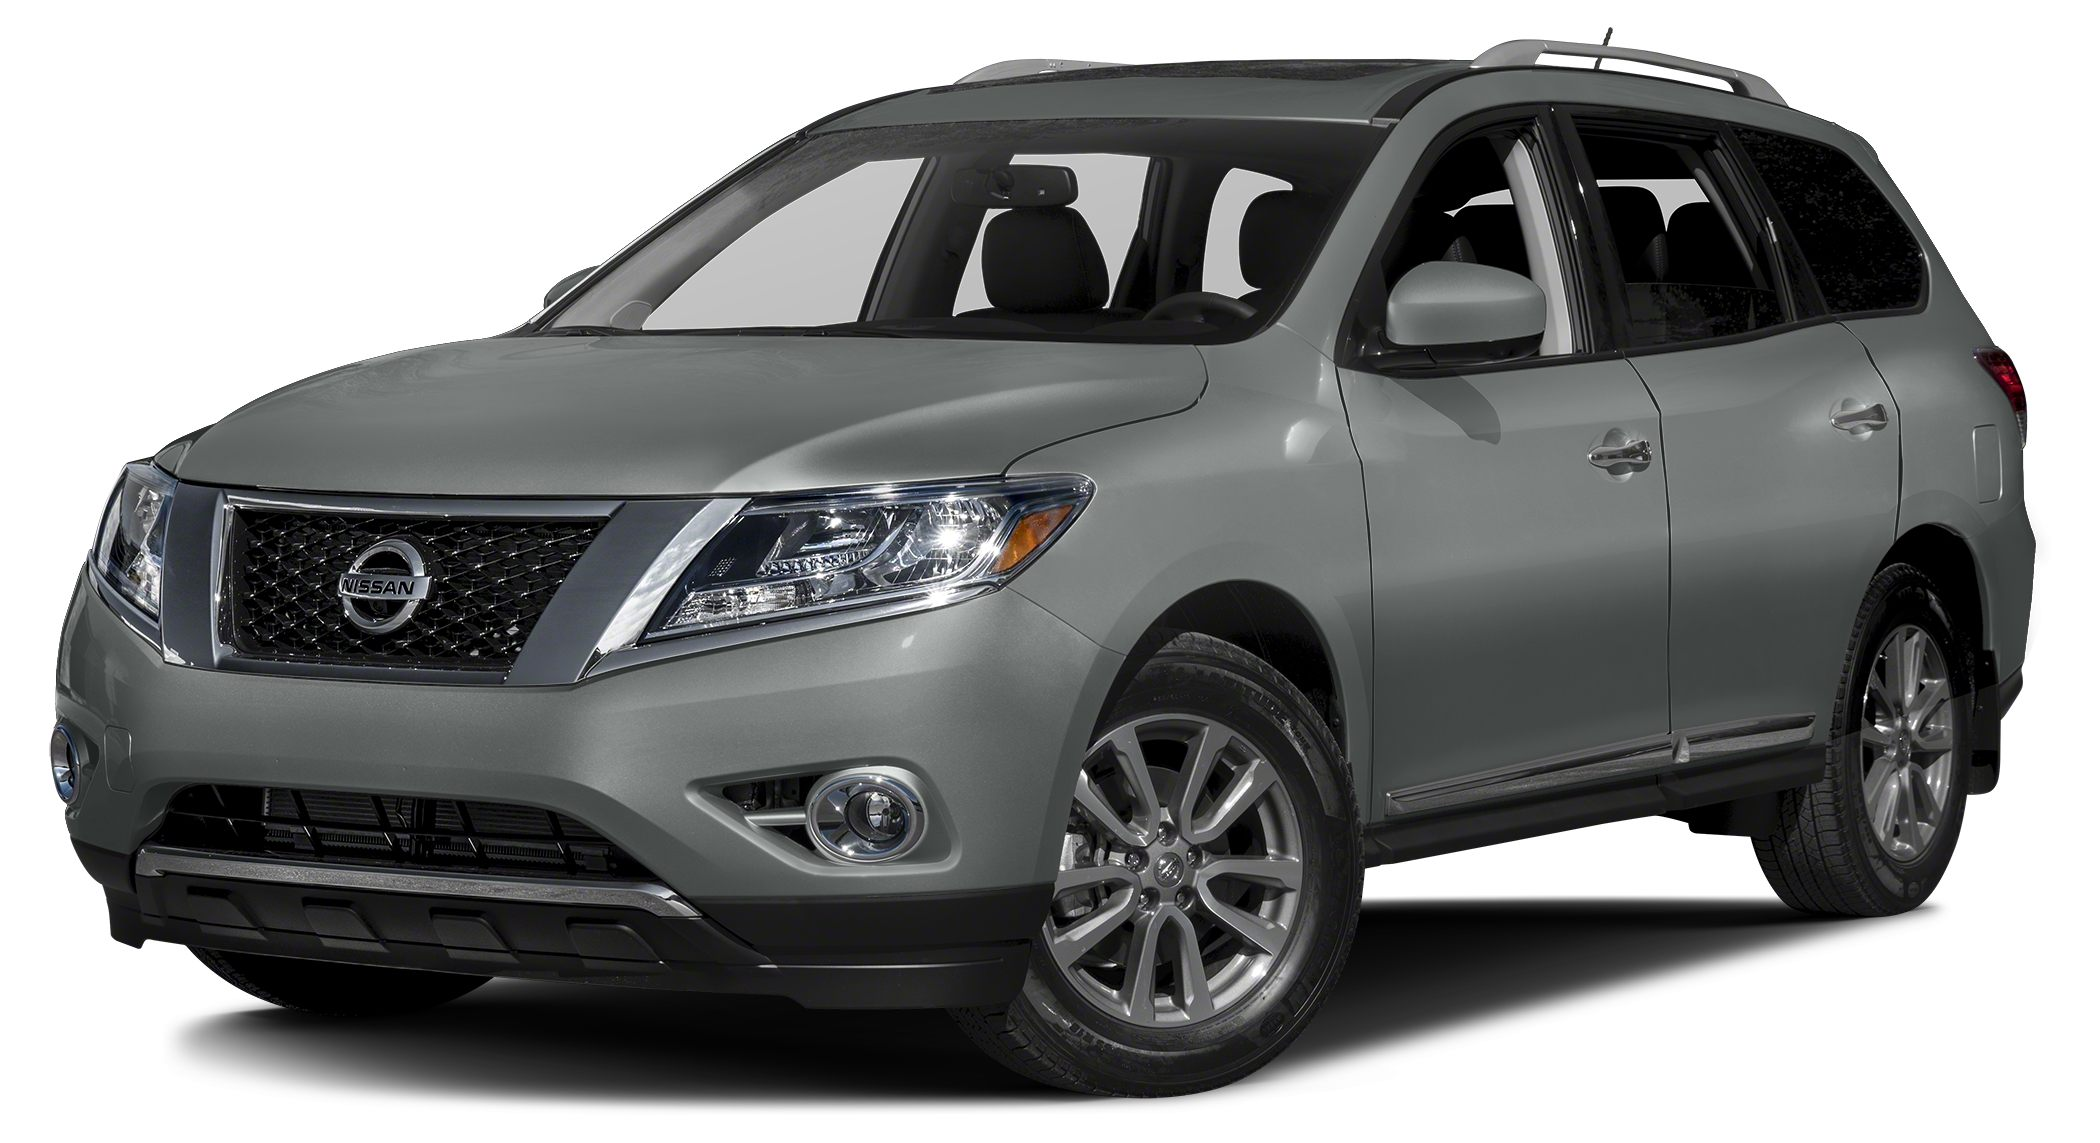 2016 Nissan Pathfinder SL Call us now Switch to Classic of Texoma Nissan has done it again They